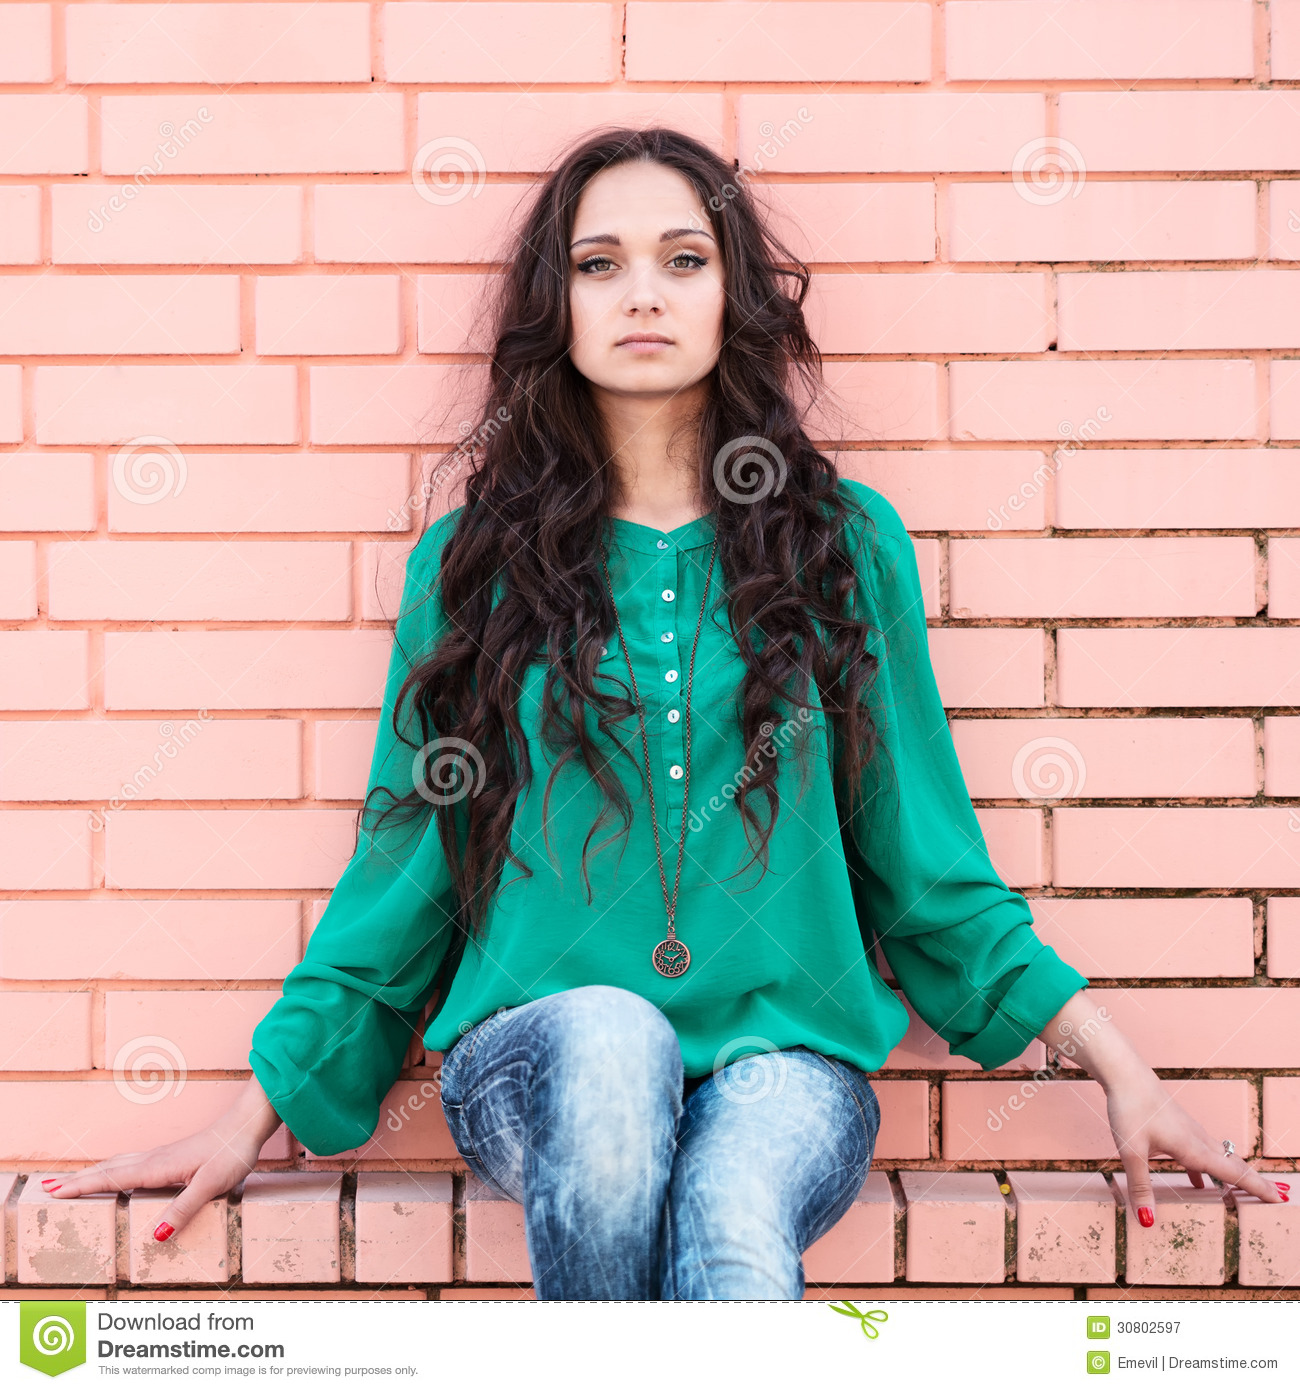 Young elegant woman on a brick wall backround